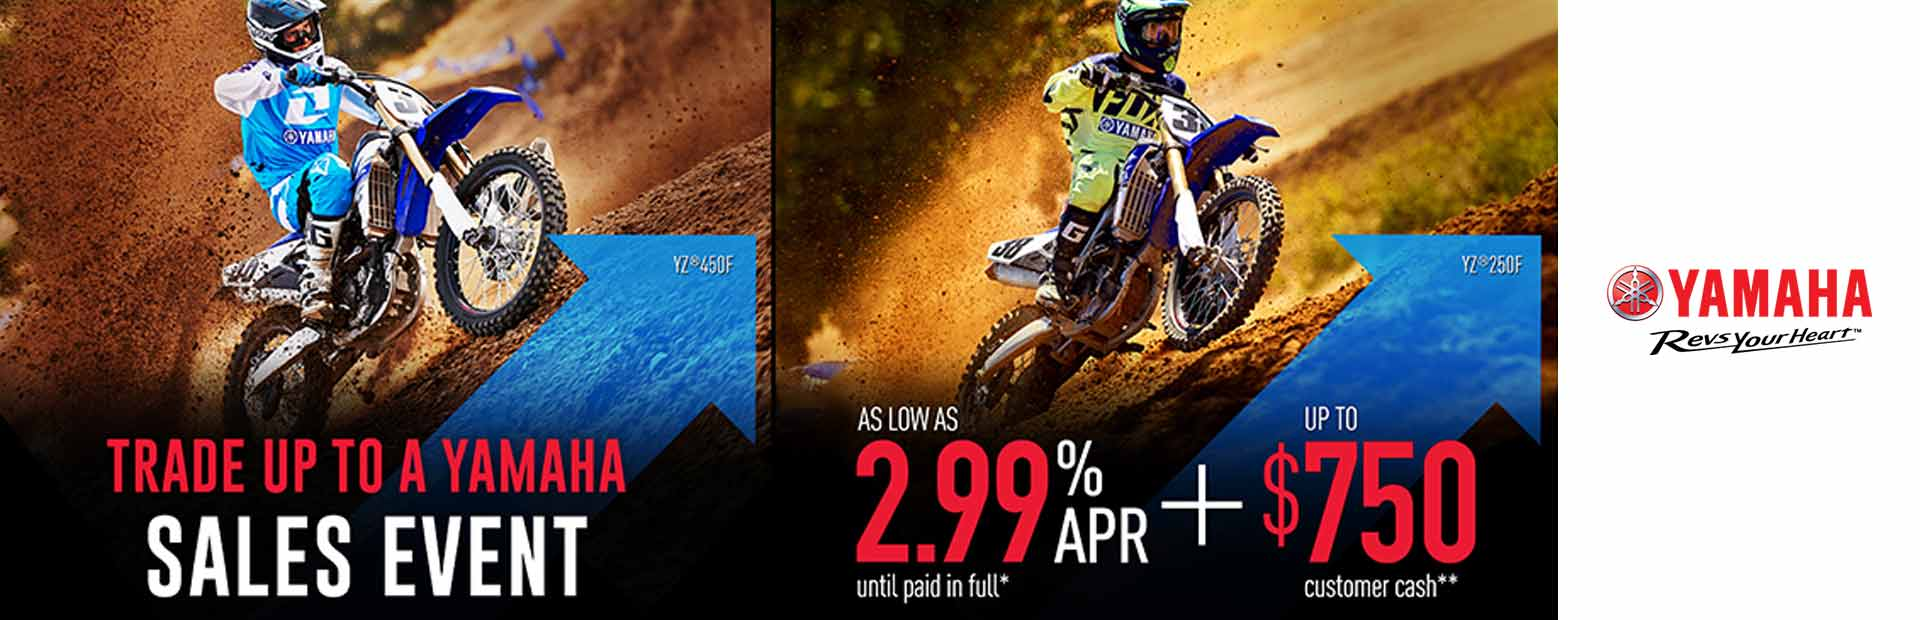 Yamaha: As Low As 2.99% APR + Up To $750 Customer Cash**